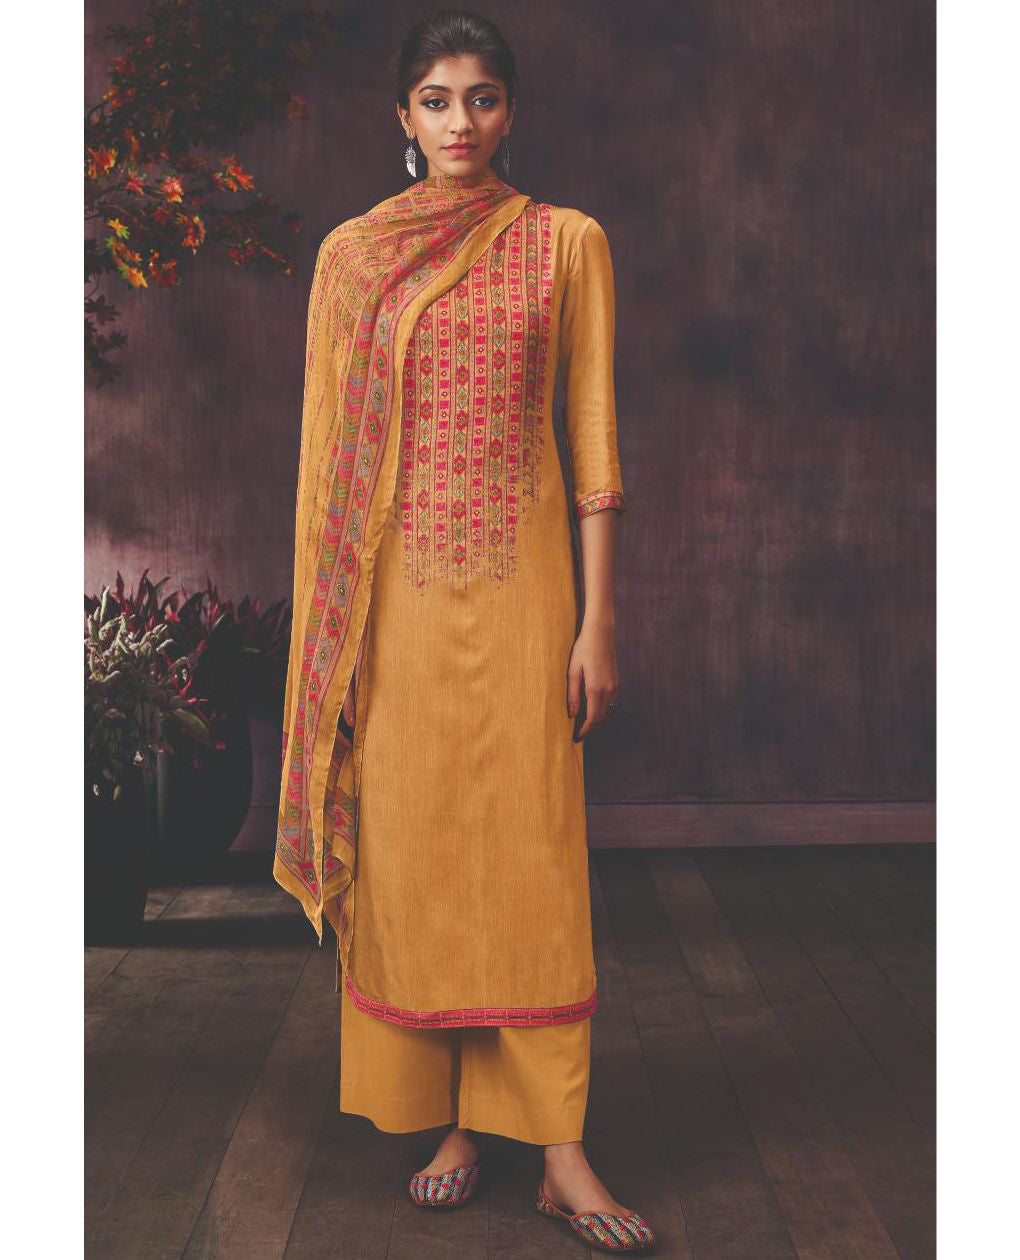 Mustard Modal Satin Printed Suit Fabric With Swarovski Highlights.